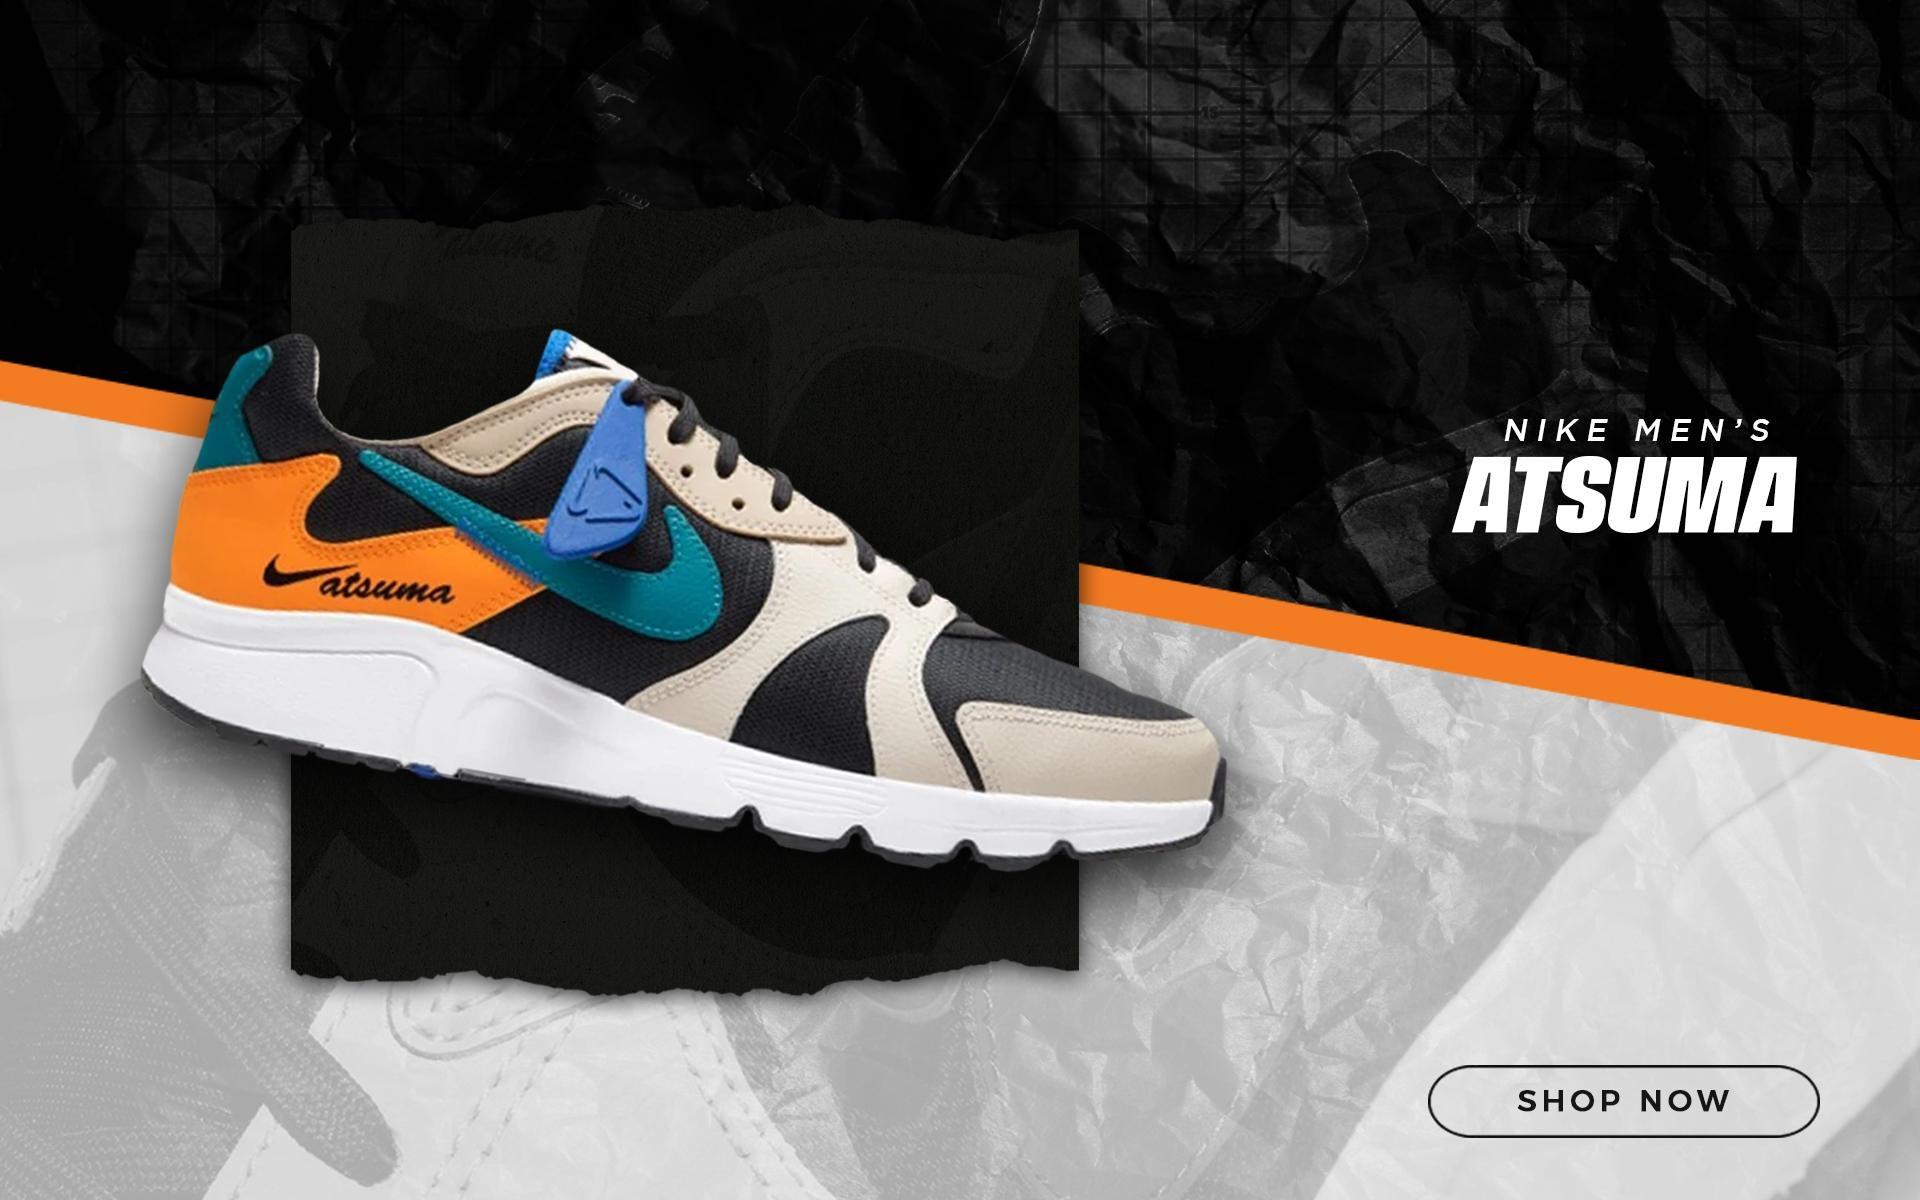 Búho Favor Económico  buy > nike shoes philippines price list sm, Up to 79% OFF